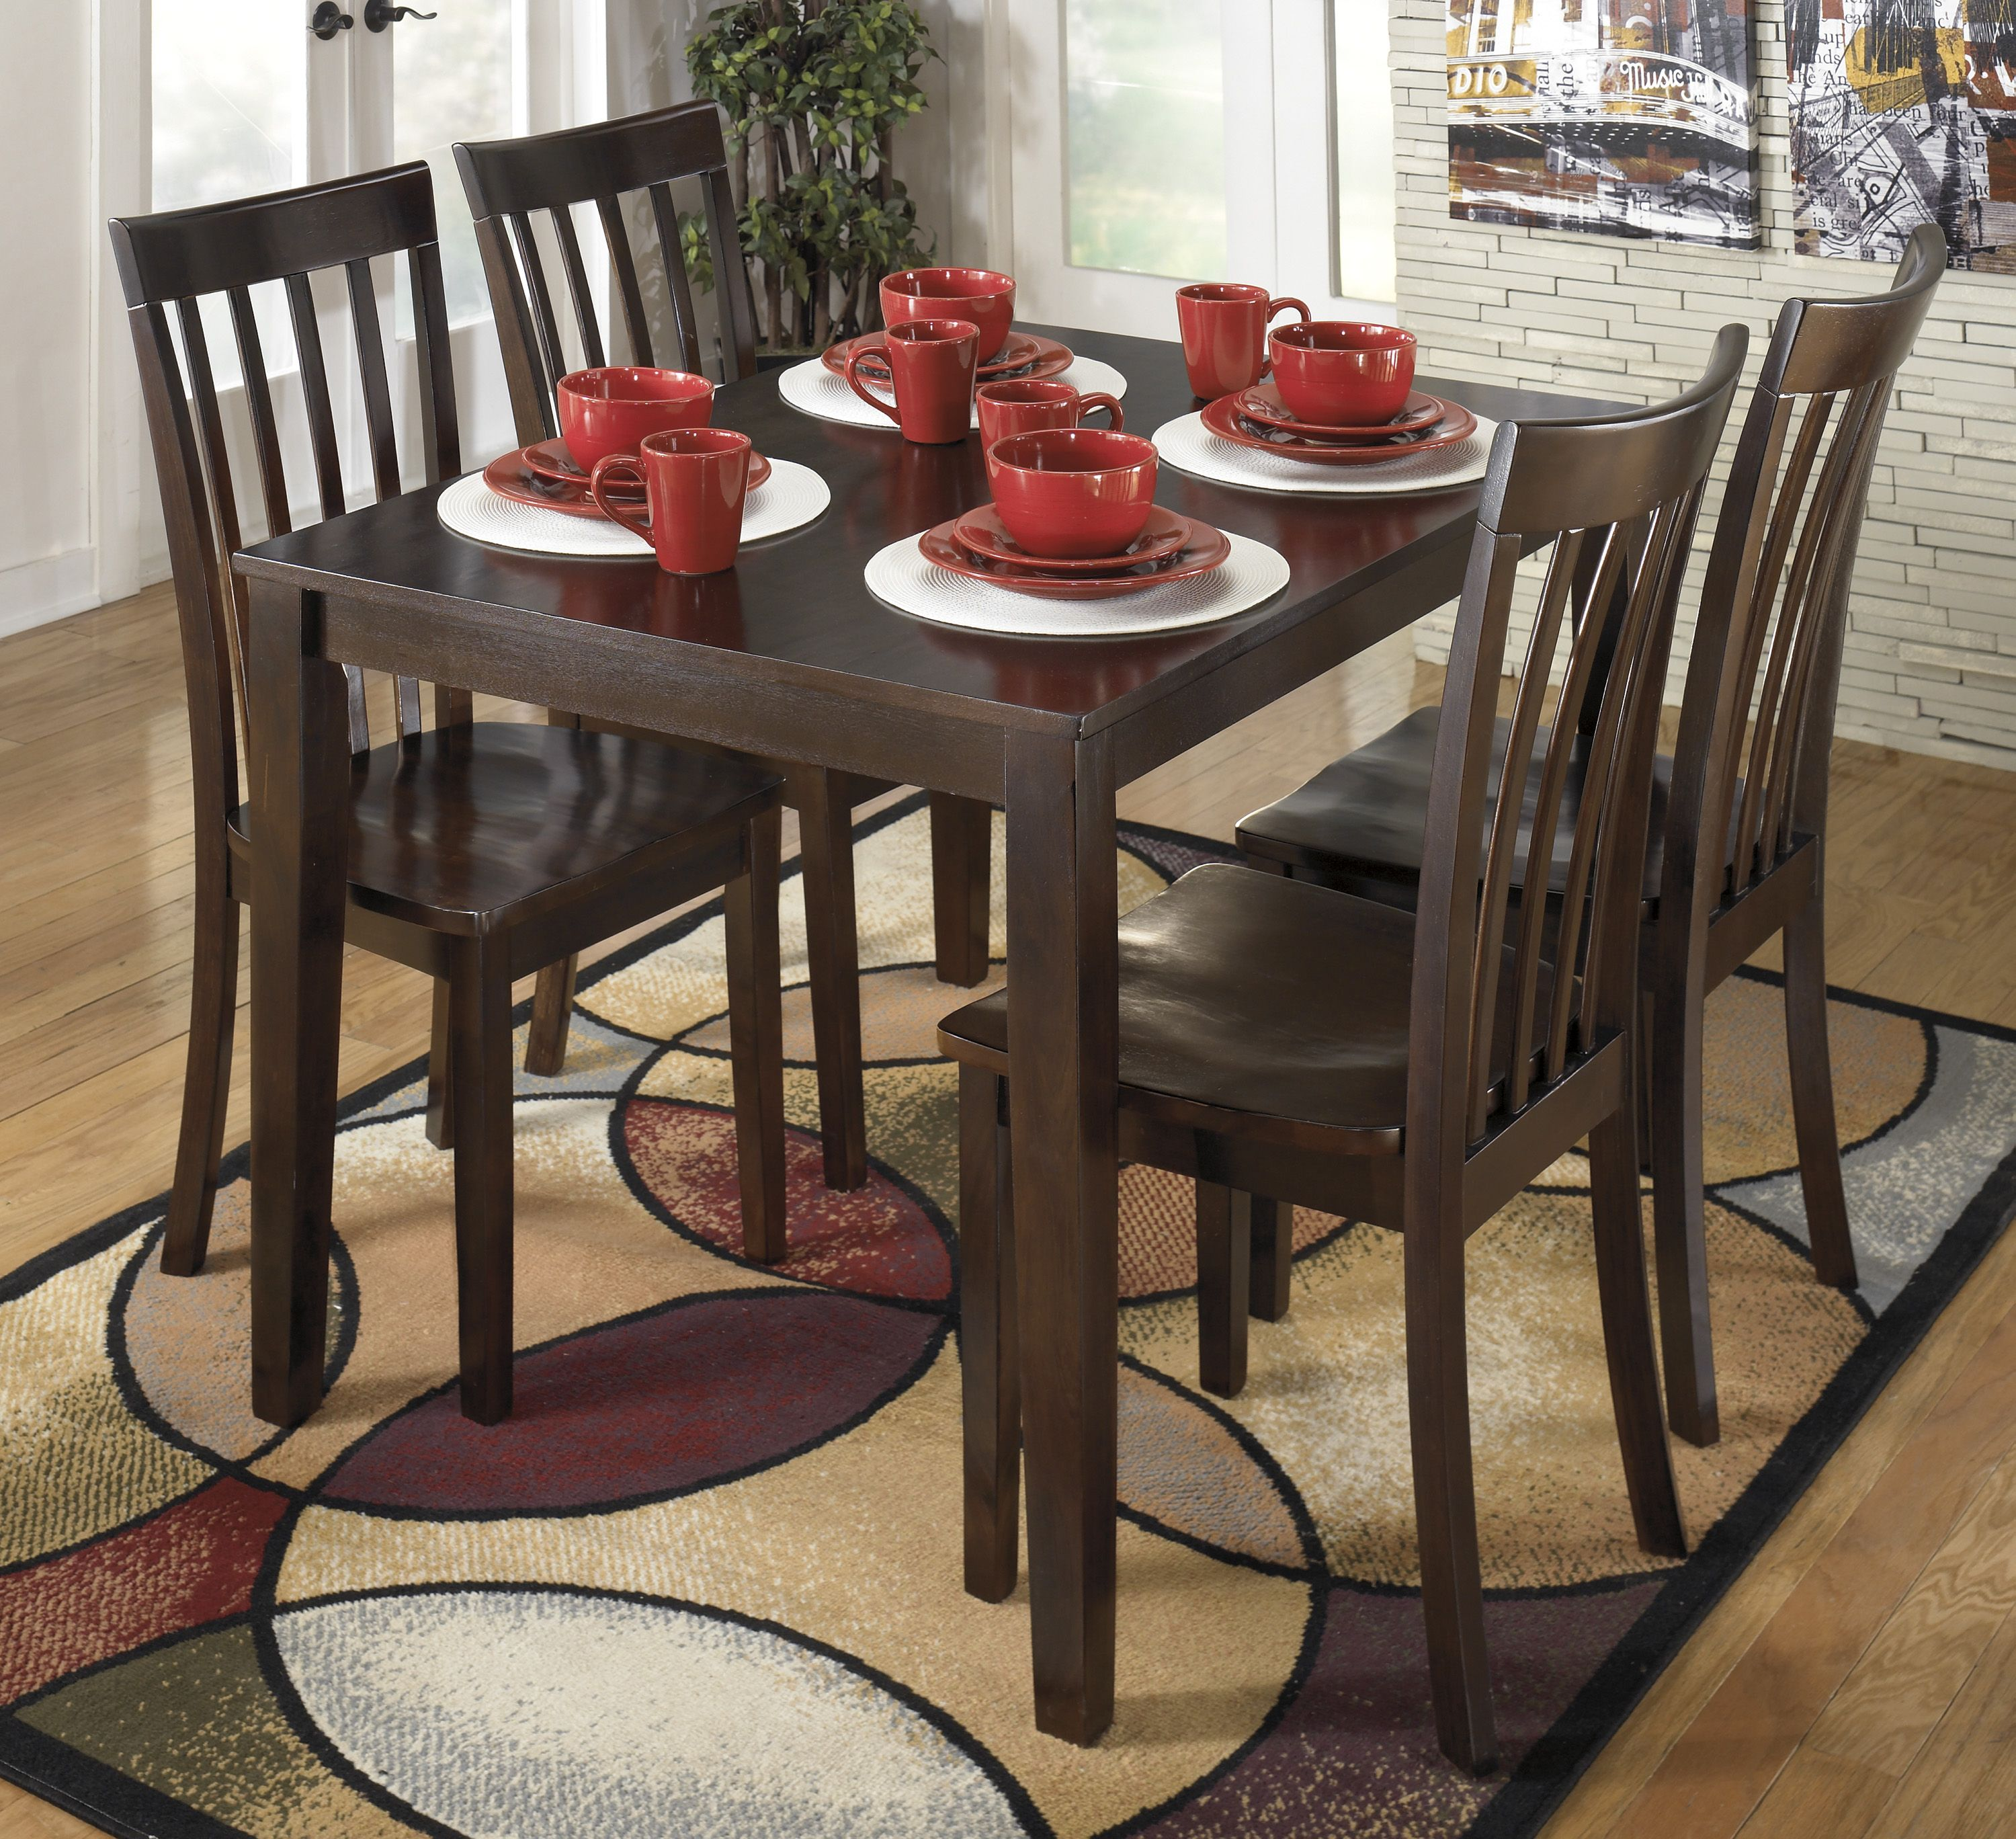 Pinreid's Liquidation On Dining Room Sets  Pinterest  Dining Interesting Dining Room Table Sets For Small Spaces Design Decoration